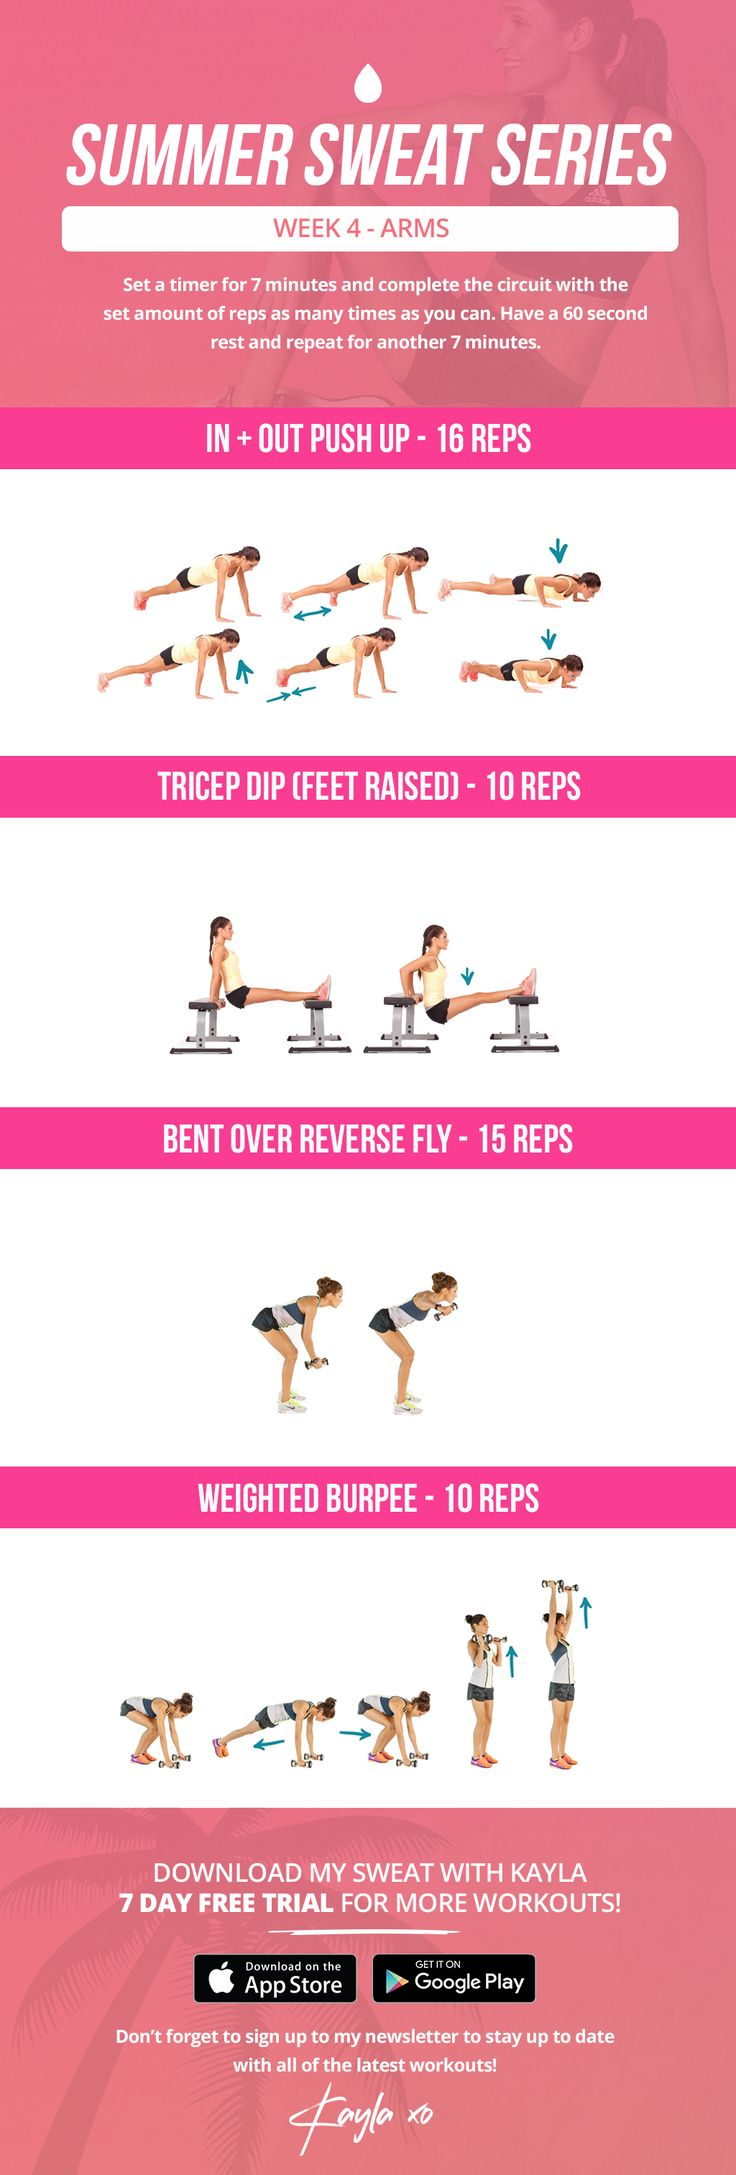 115 best health fitness images on pinterest kayla workout summer sweat series wednesday week 4 fandeluxe Choice Image